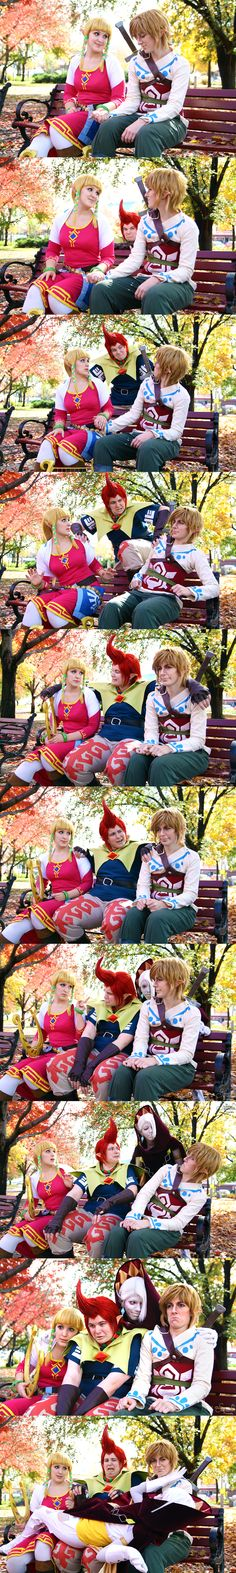 A Not So Zelda date...this is just perfect! (Link's expressions with Ghirahim!)